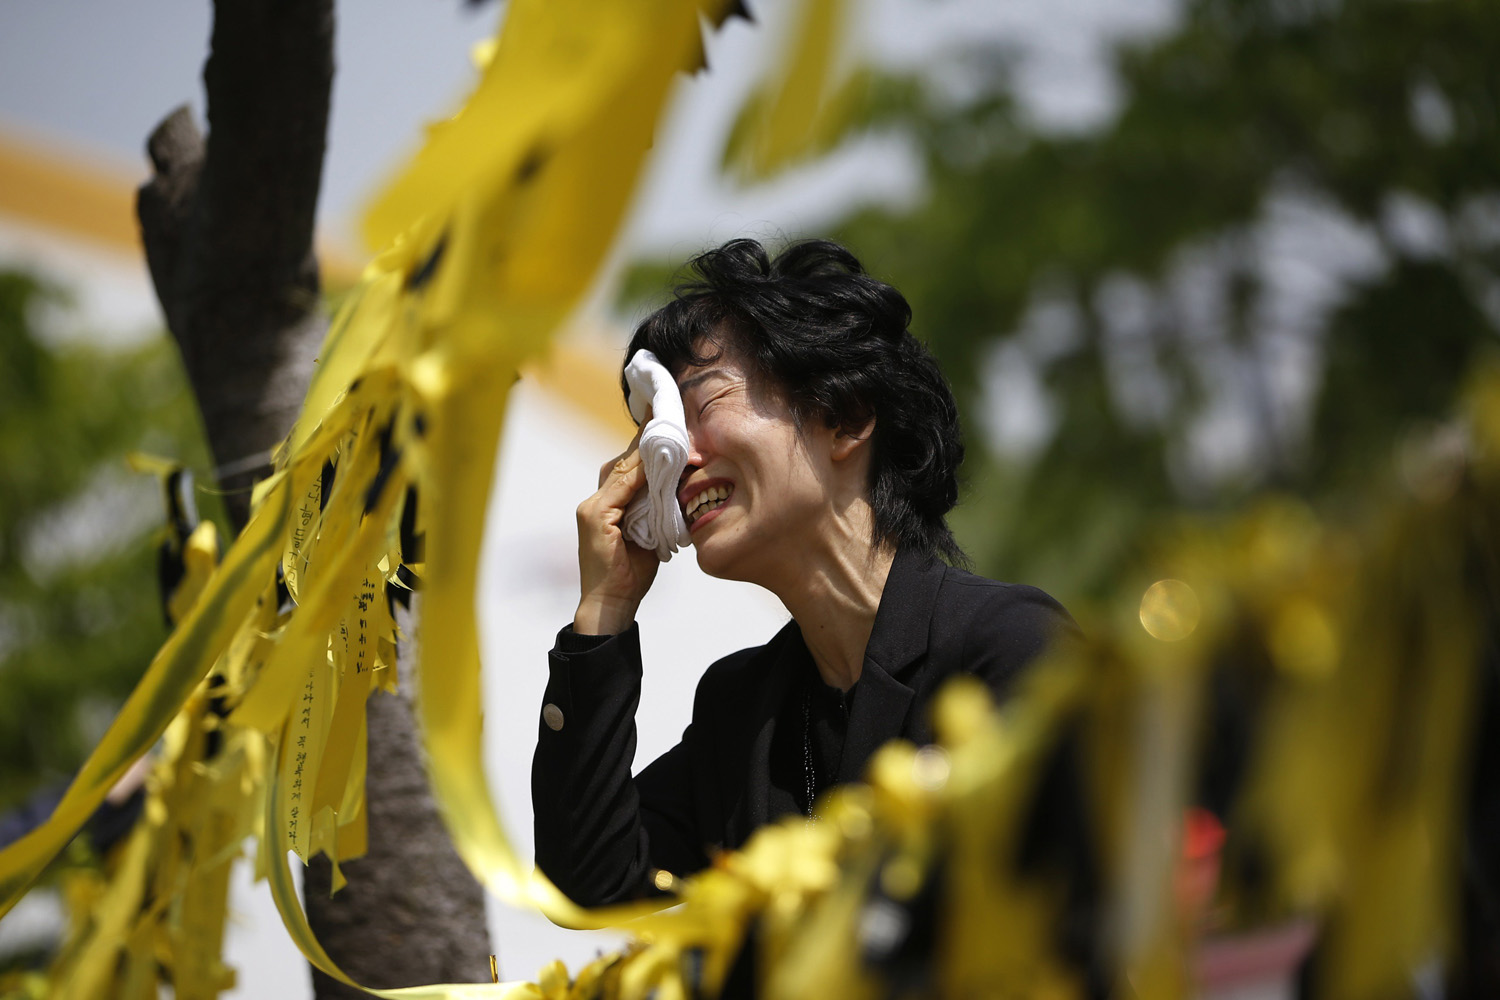 May 2, 2014. A mourner cries next to yellow ribbons dedicated to missing and dead passengers of sunken passenger ship Sewol, after paying tribute at the official memorial altar in Ansan.